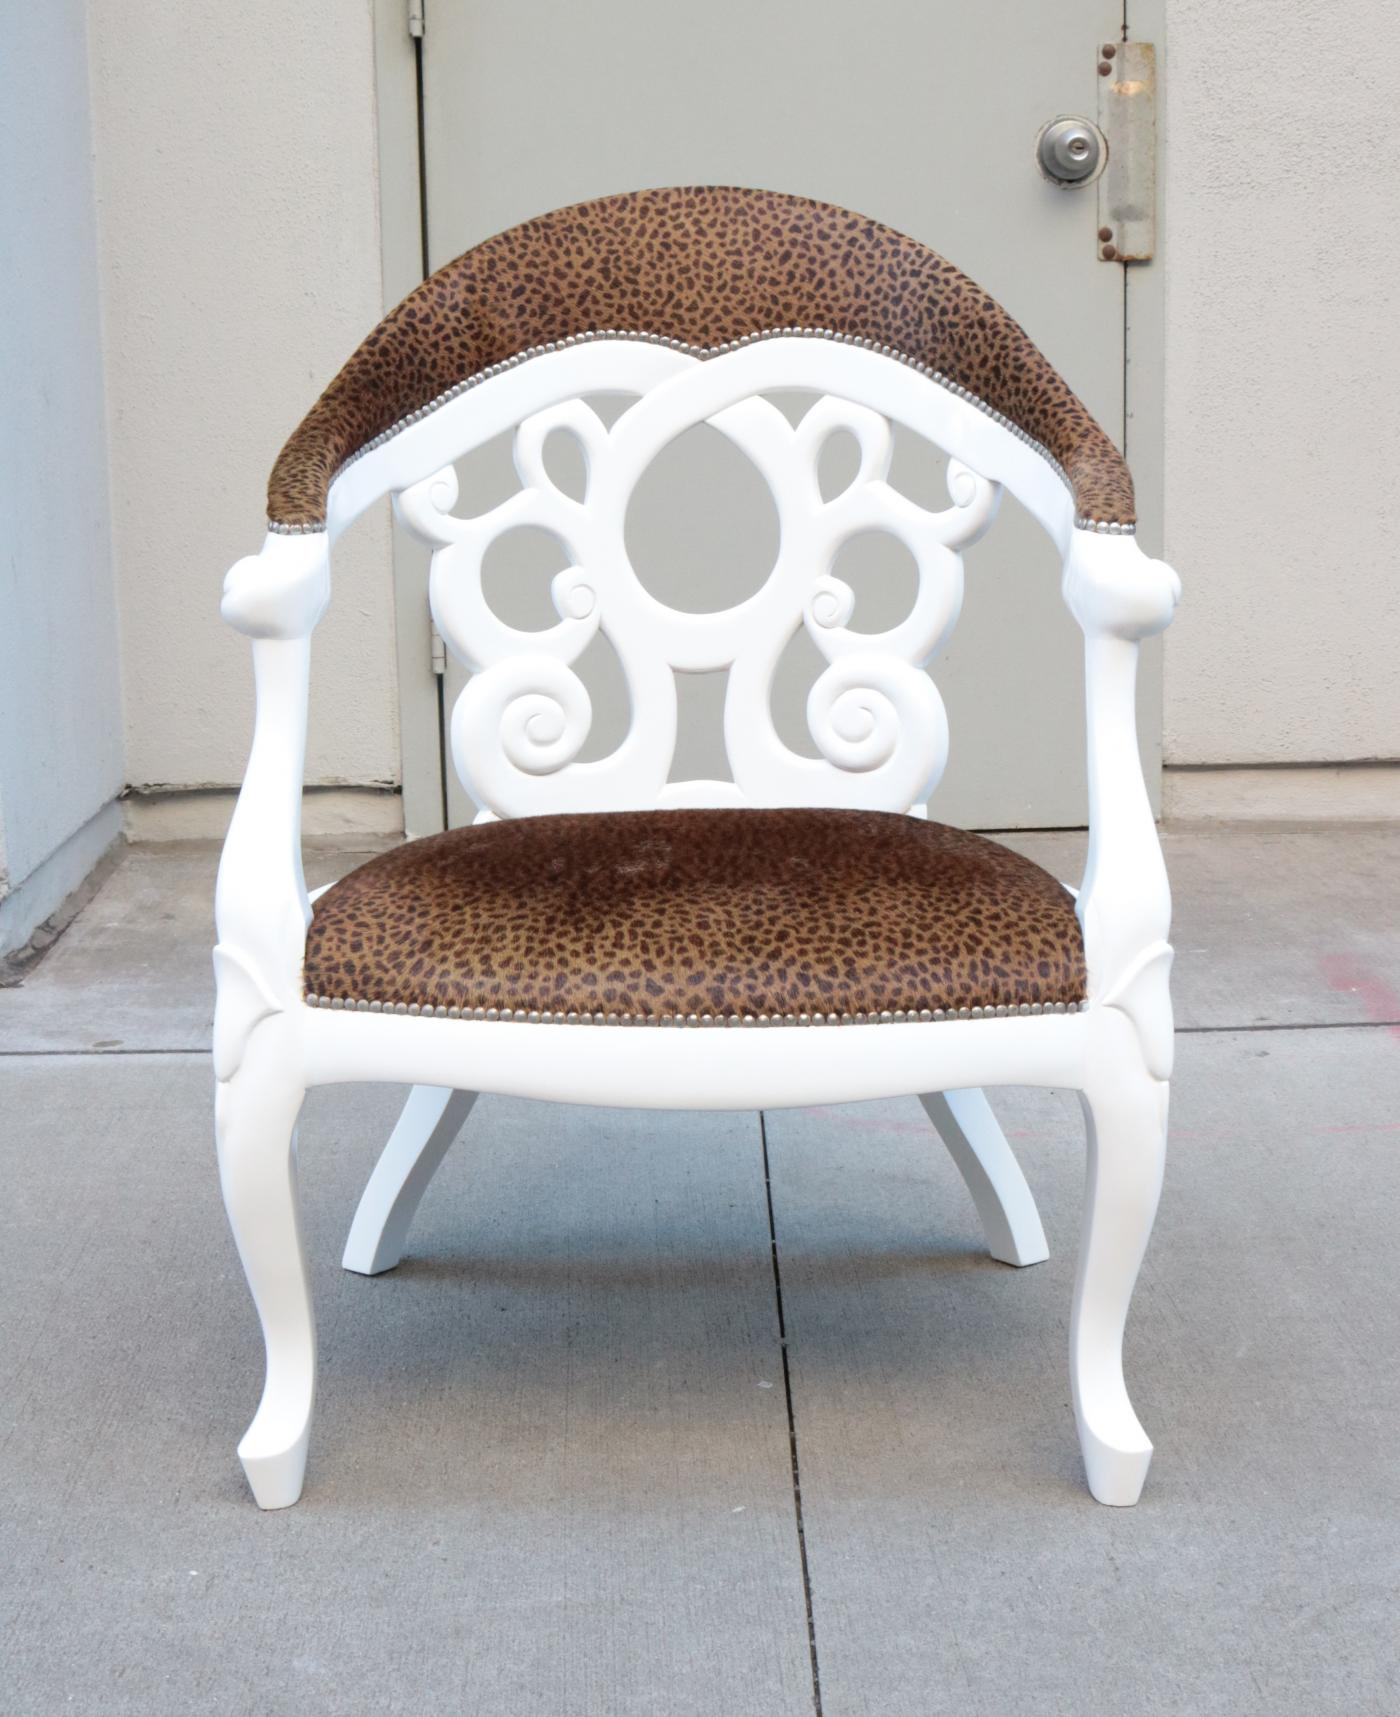 Pair of Armchairs designed by David Barrett. Solid wood in white Lacquer.